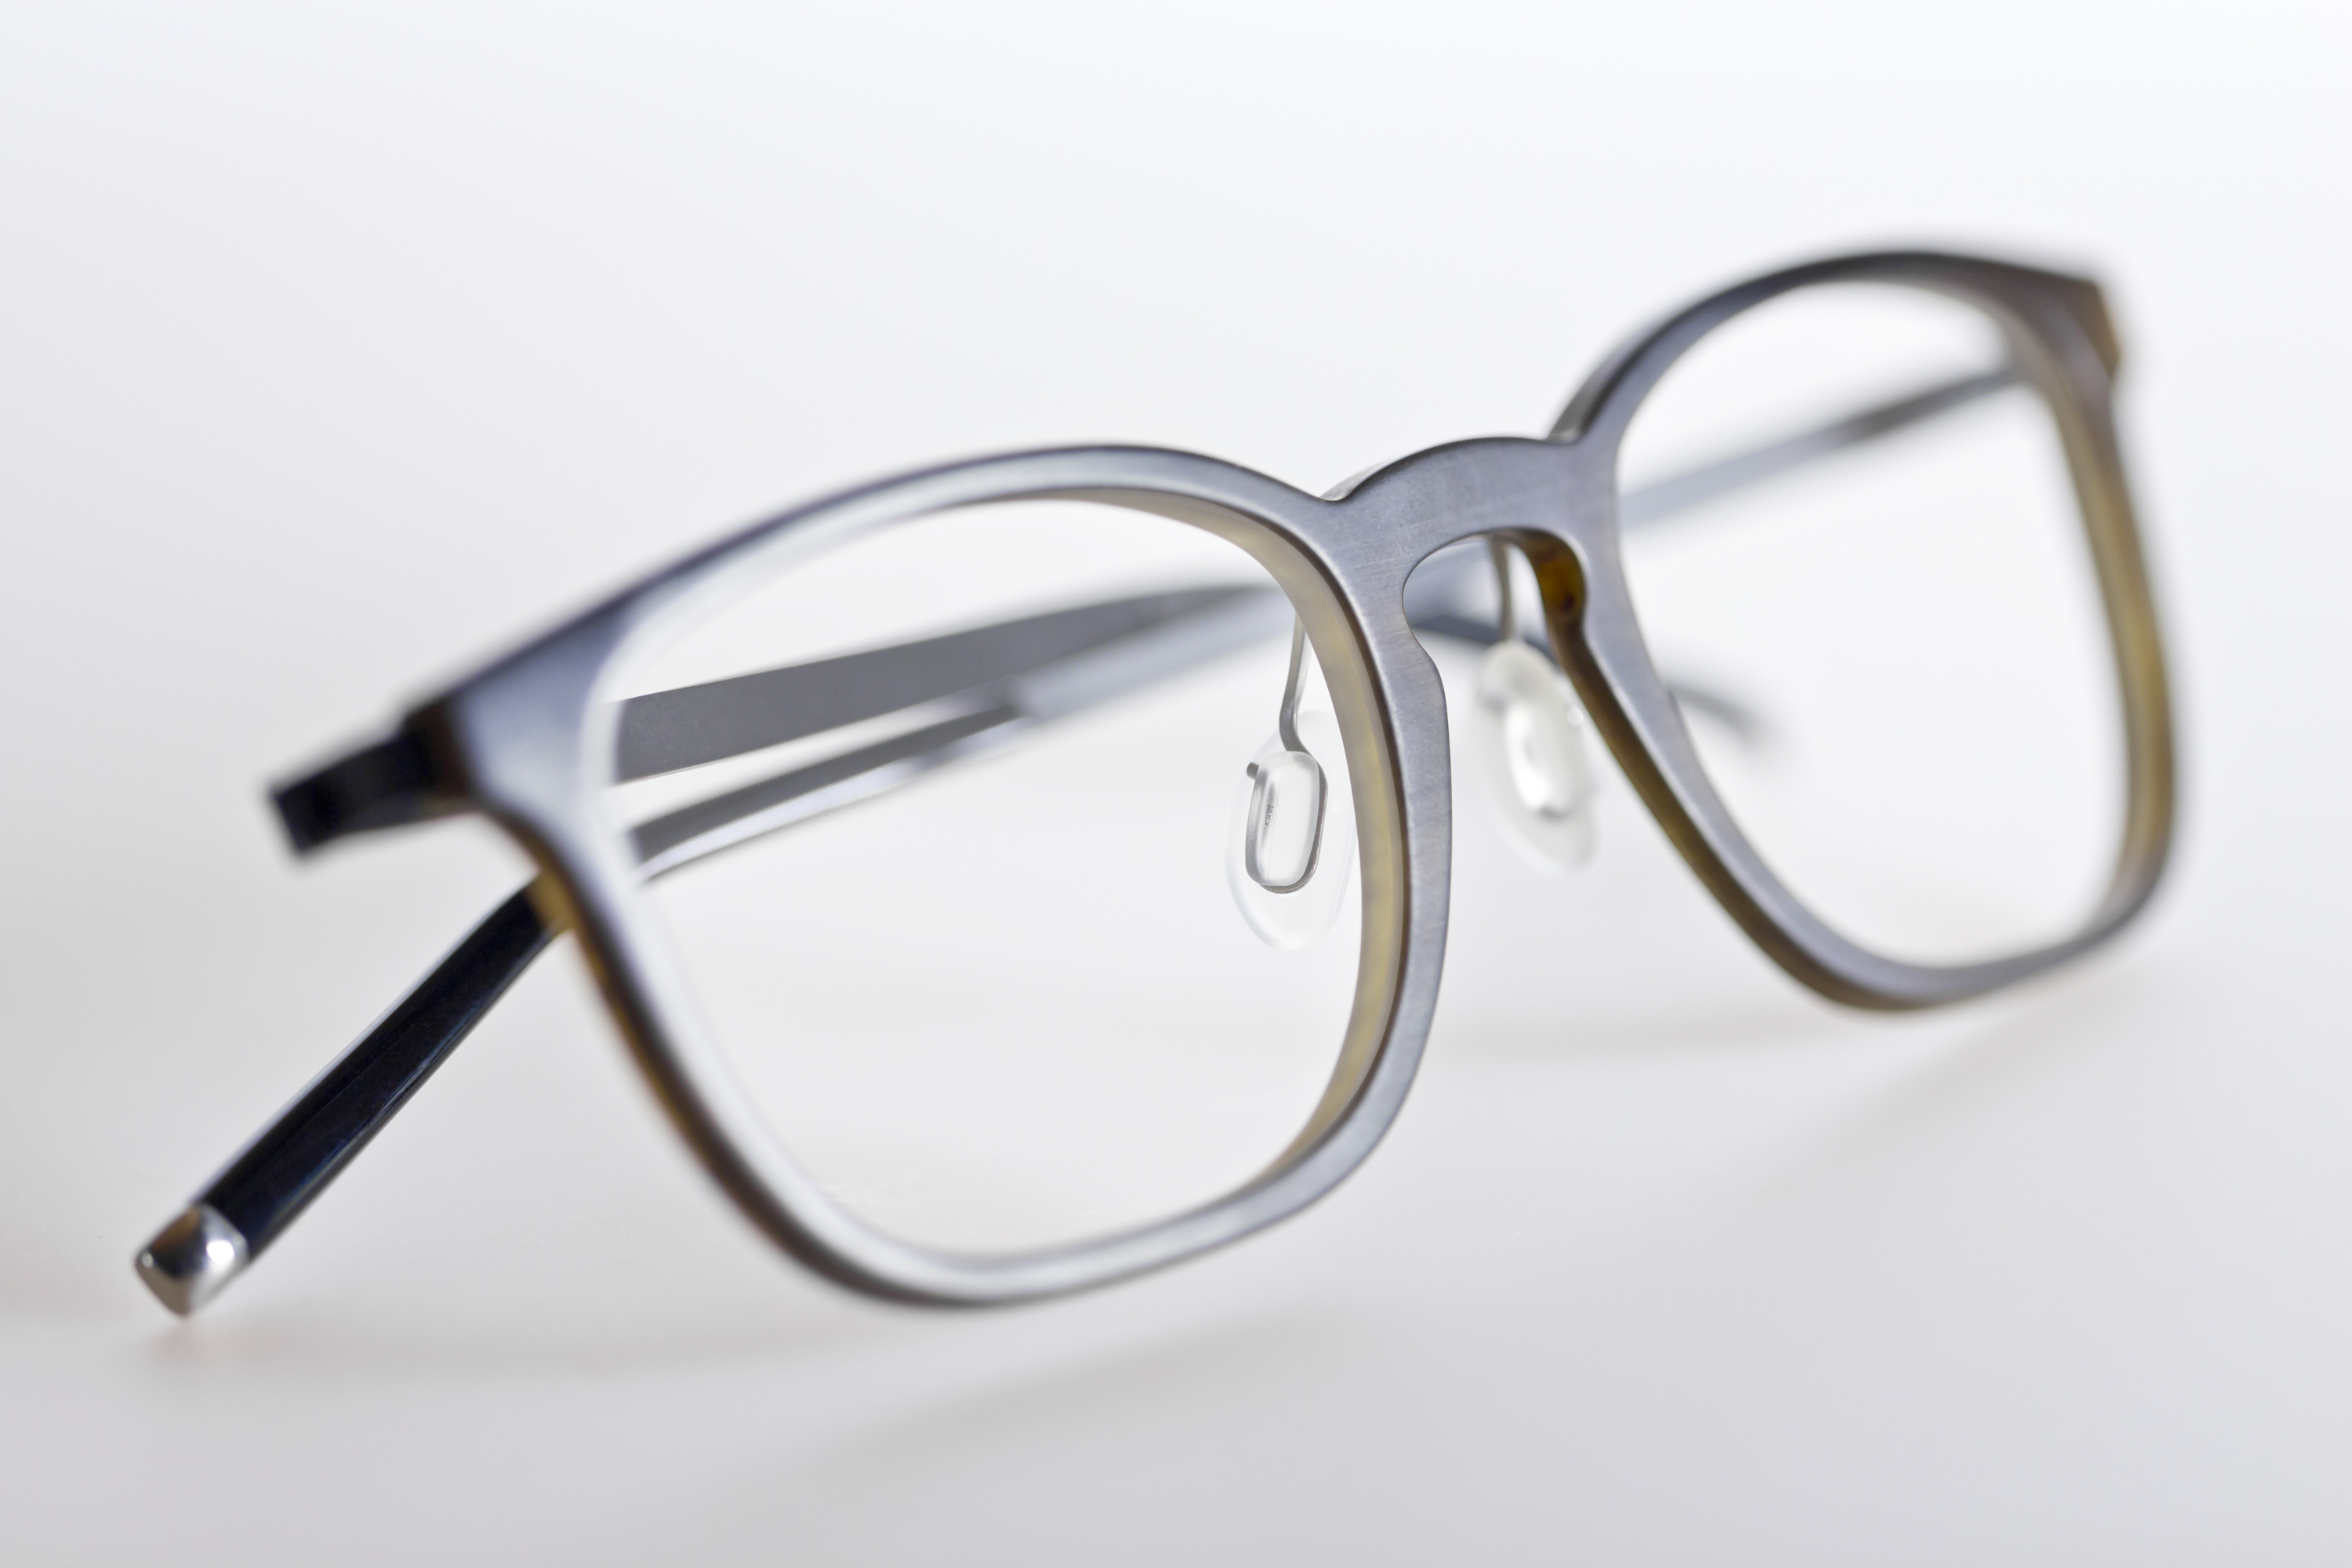 TI-LINE BY HOFFMANN NATURAL EYEWEAR